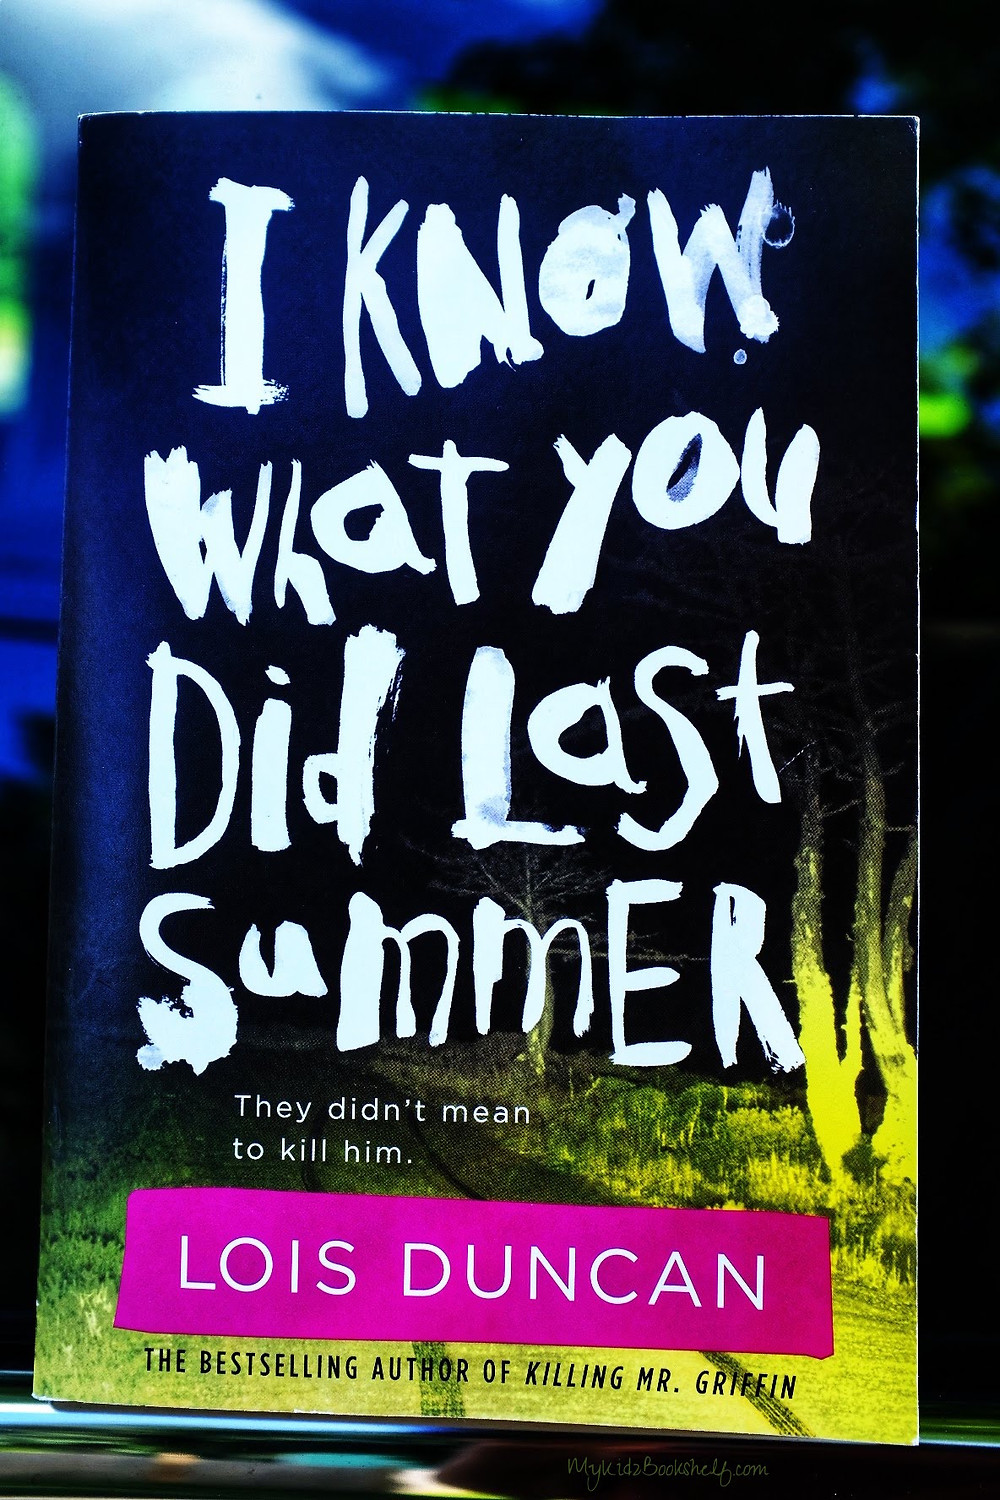 I-Know-What-You-Did-Last-Summer-by-Lois-Duncan